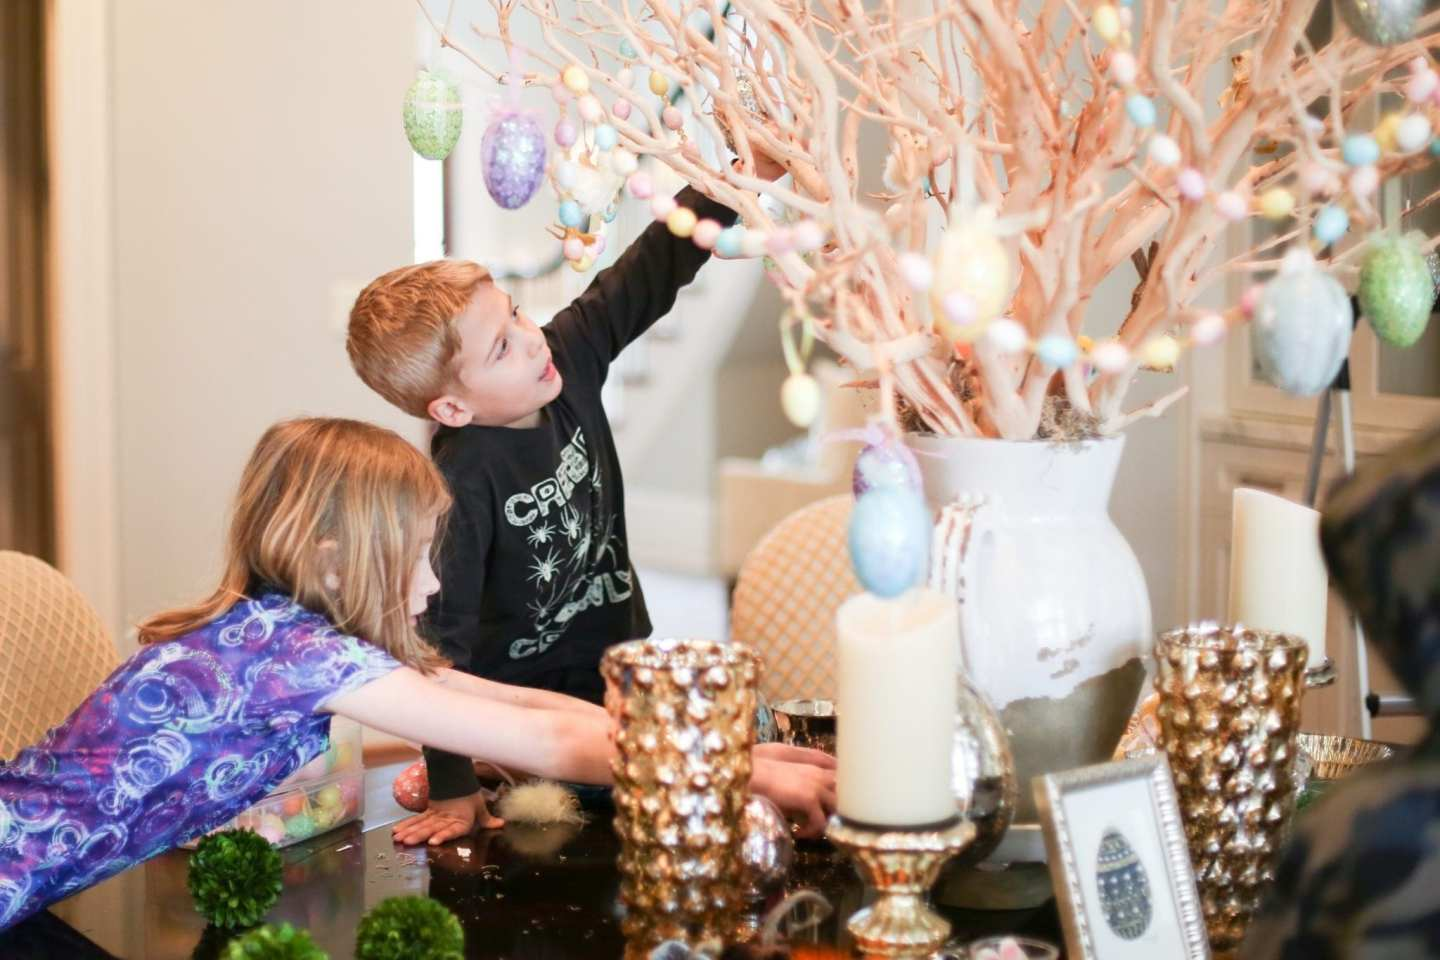 Kids decorating for Easter with Easter egg garland and Egg ornaments handing from branch centerpiece.